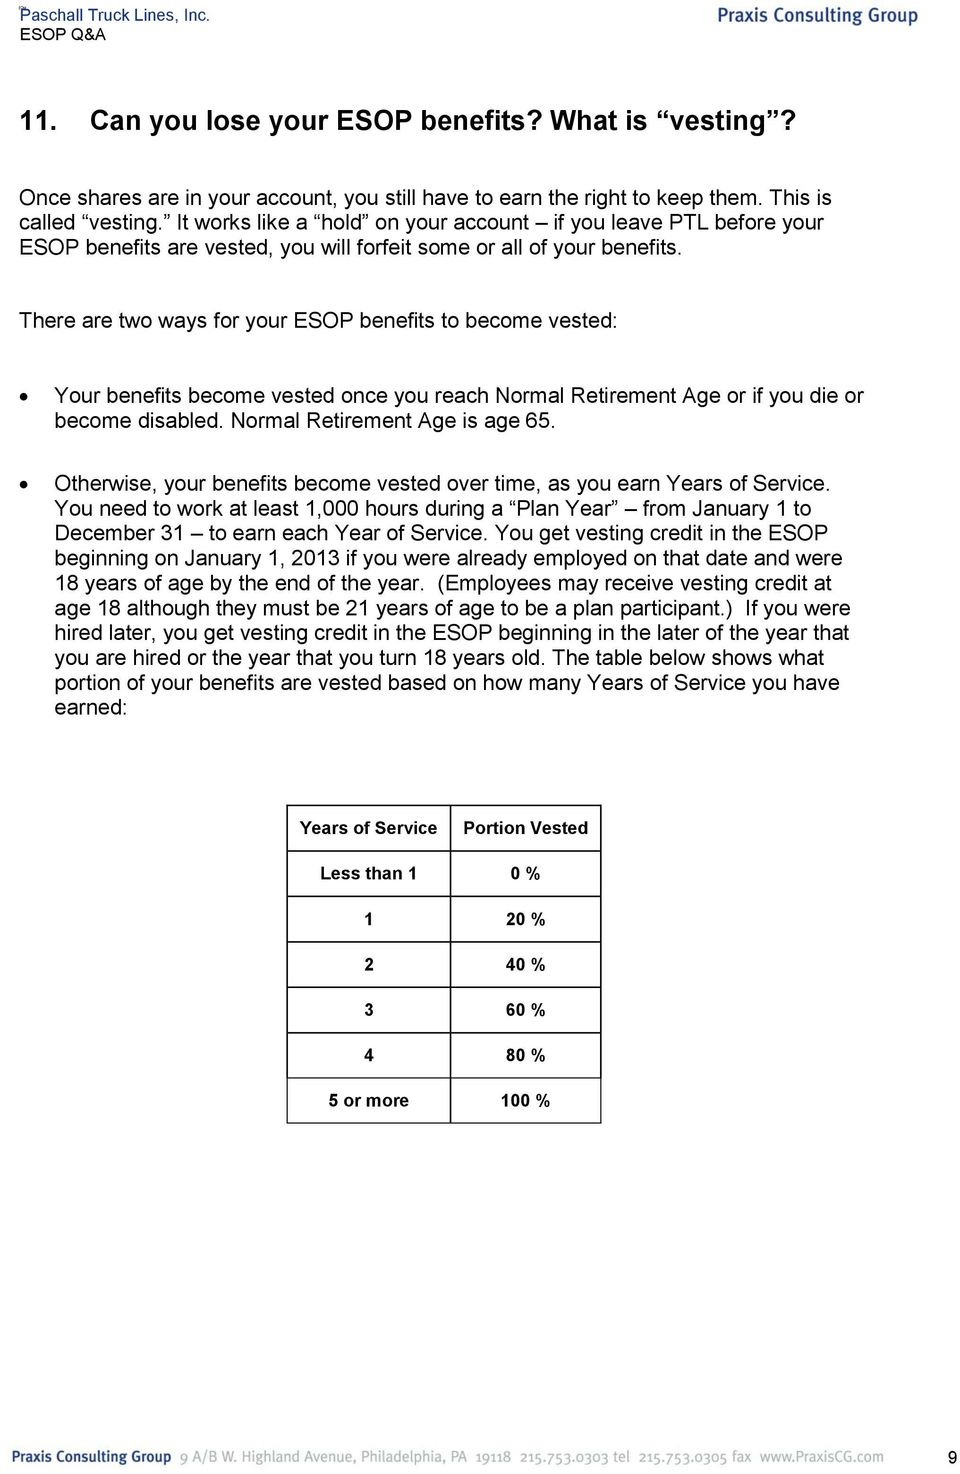 There are two ways for your ESOP benefits to become vested: Your benefits become vested once you reach Normal Retirement Age or if you die or become disabled. Normal Retirement Age is age 65.